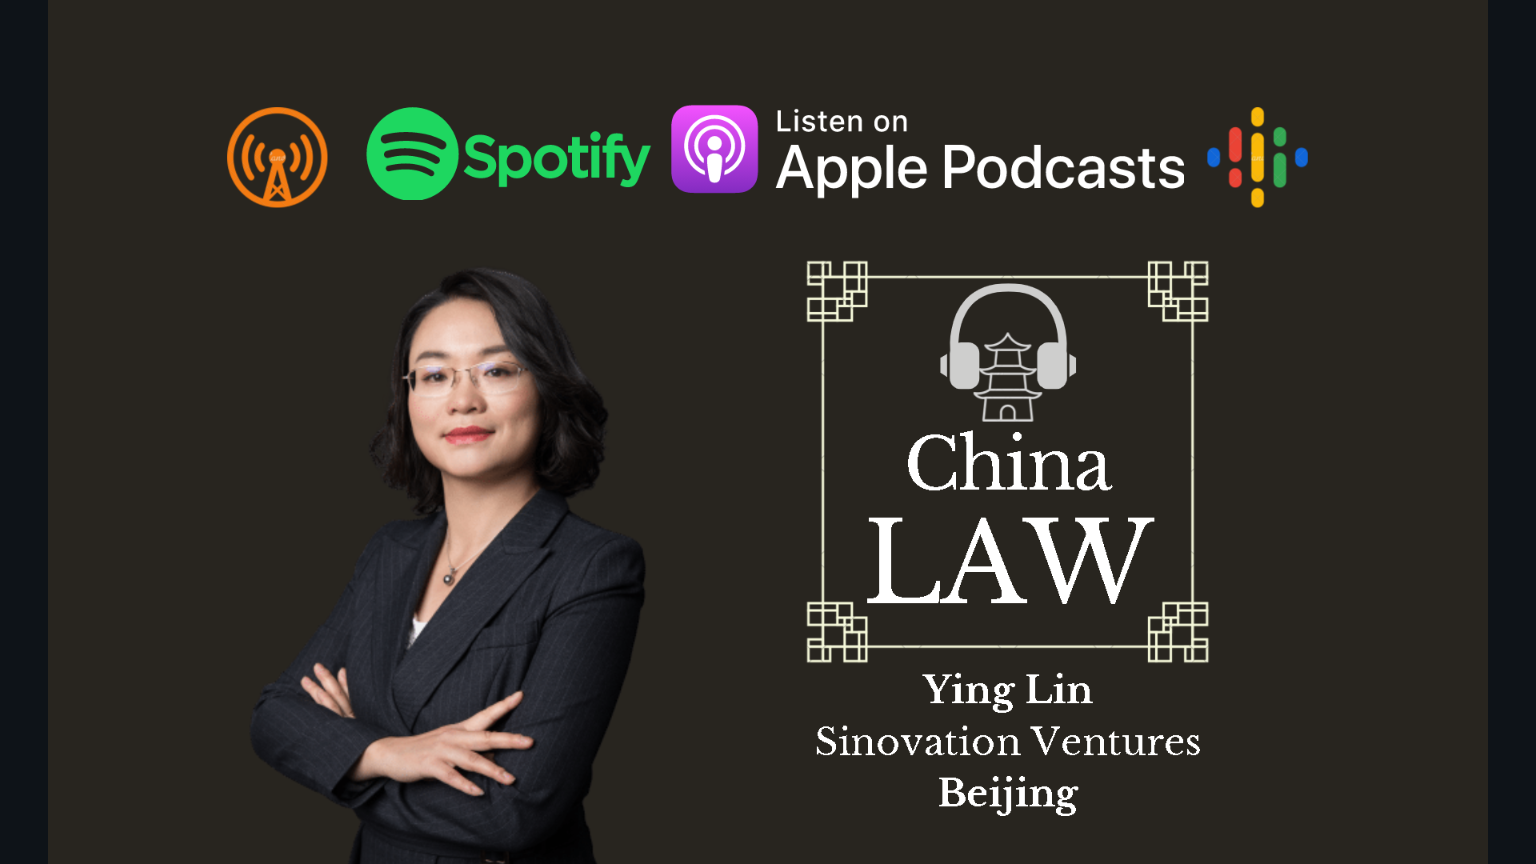 Podcast #28: Representing a Leading Chinese Venture Capital Firm - Ying Lin, Sinovation Ventures